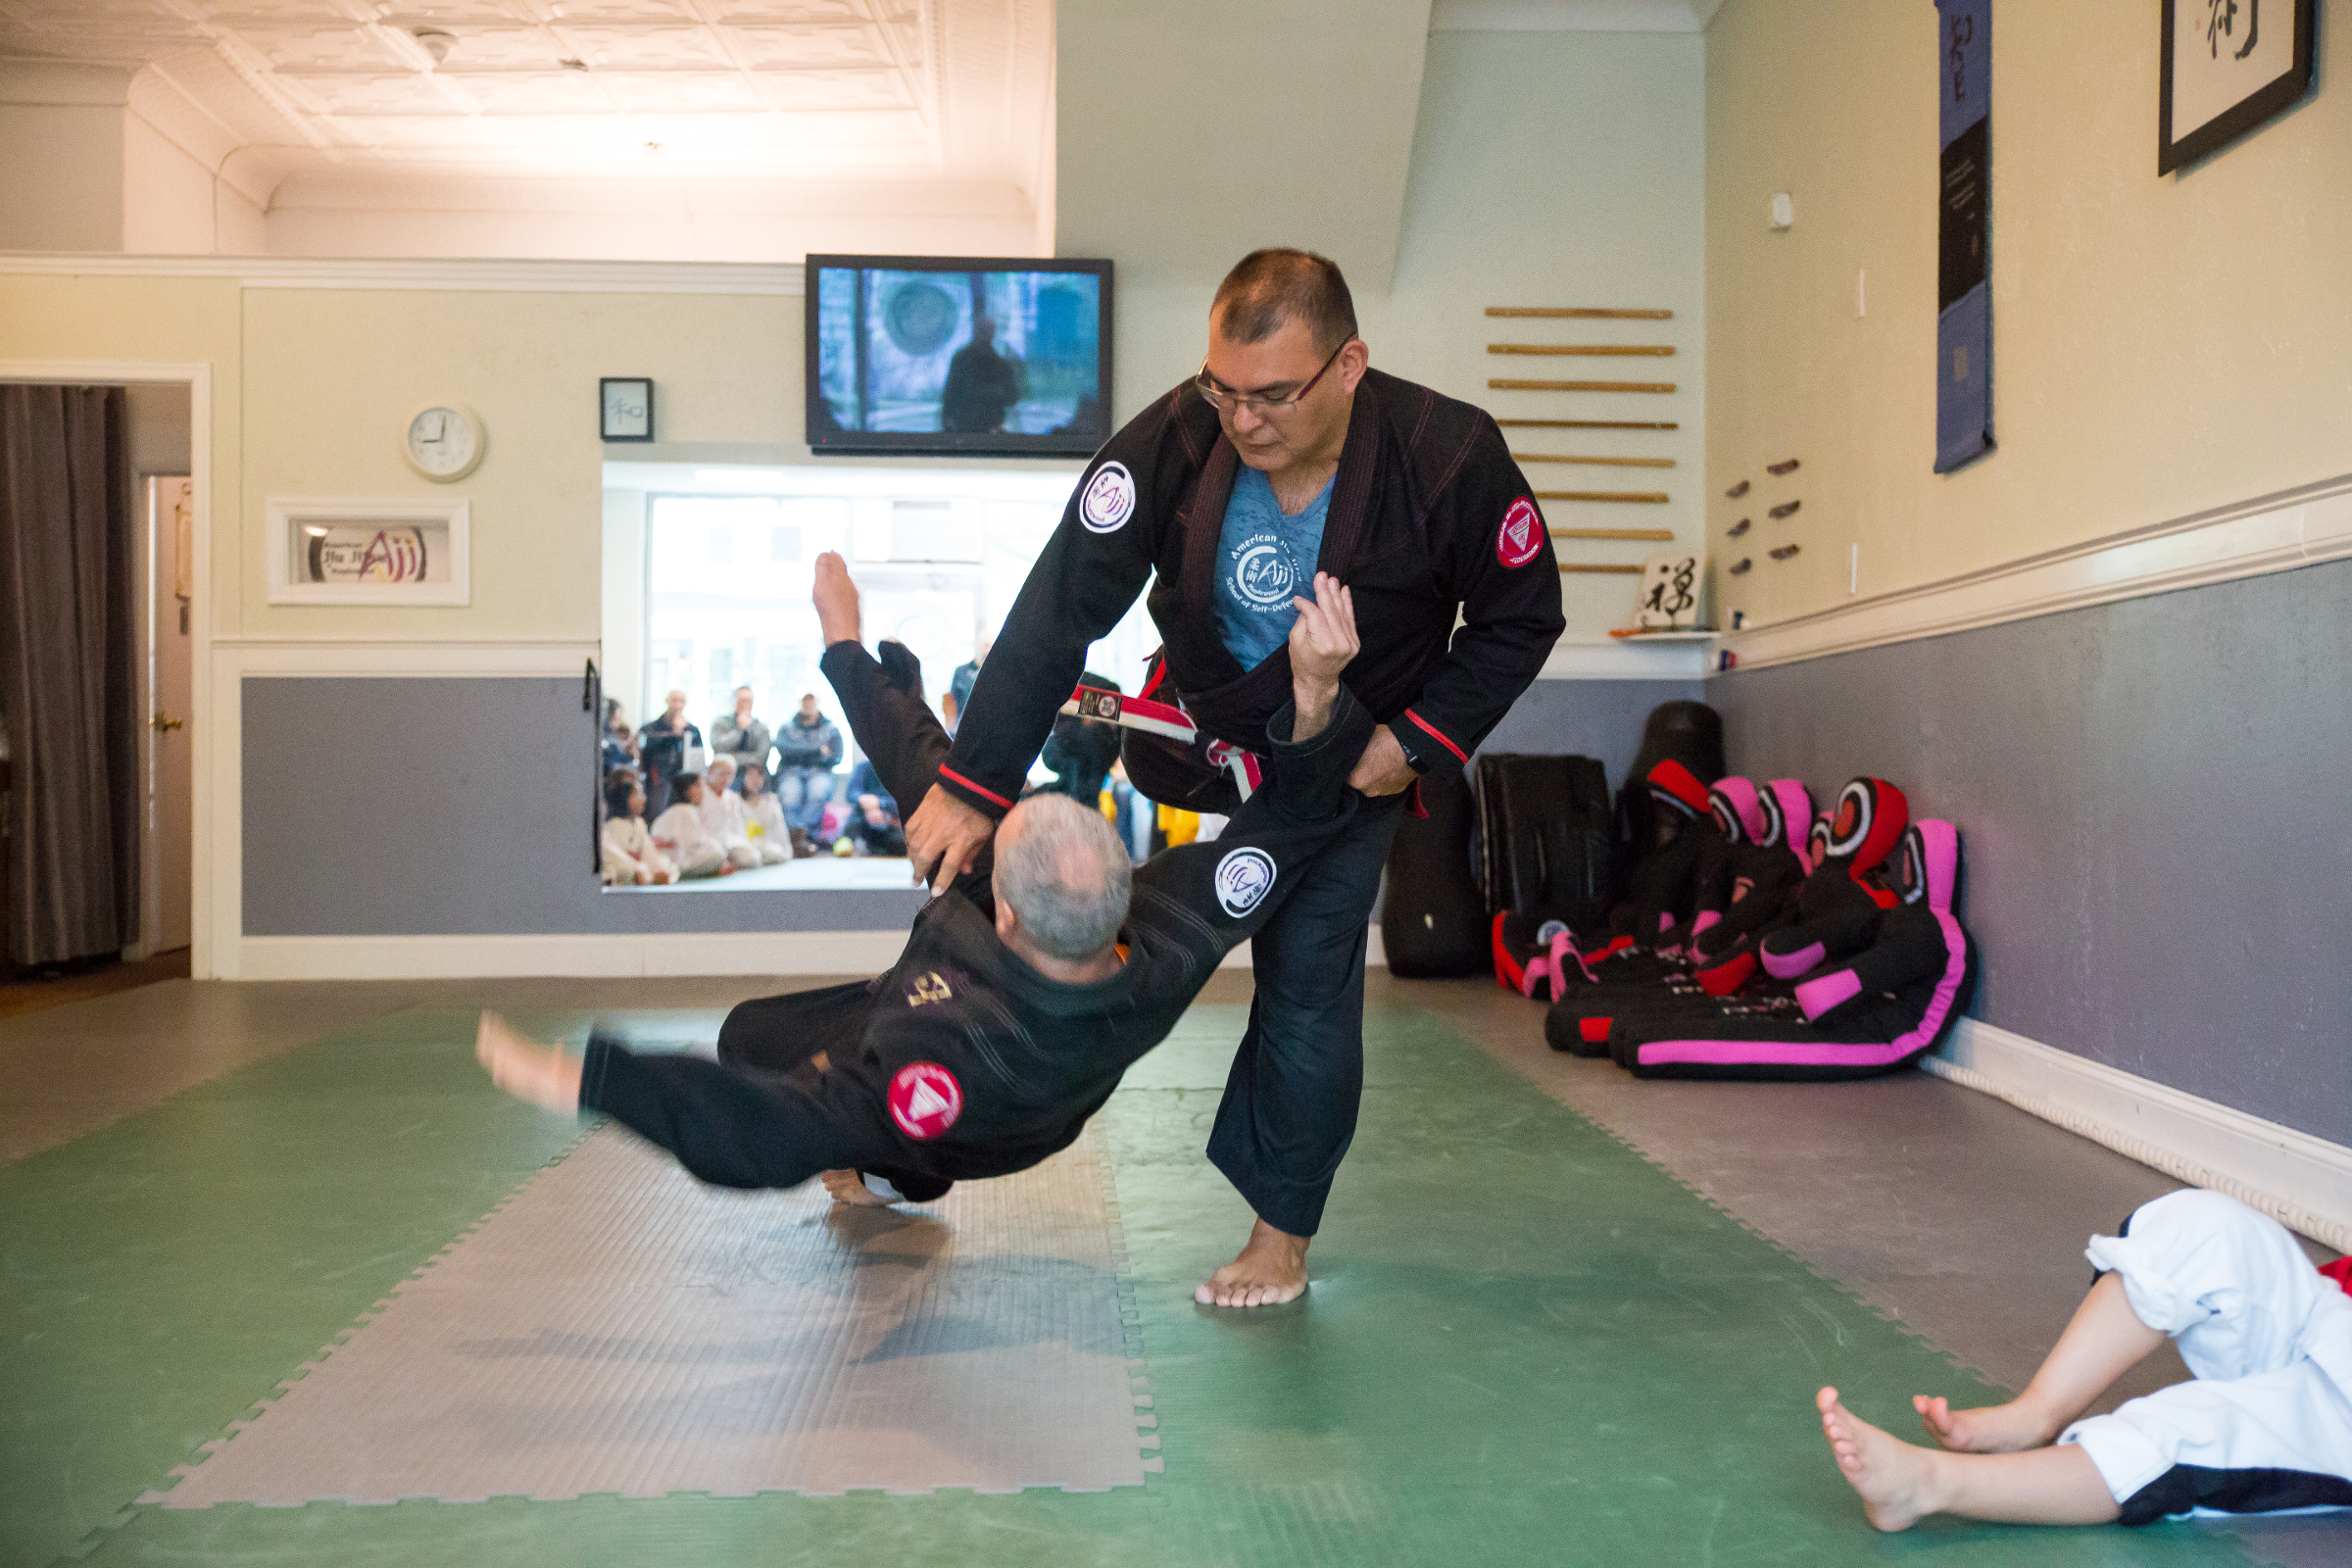 For Adults - American Jiu Jitsu offers scenario-based self-defense. Our practical approach to protecting one's self does not rely on size, strength, speed, or flexibility to be effective. Instead, Jiu Jitsu focuses on physics and anatomical knowledge to regain control of any situation.